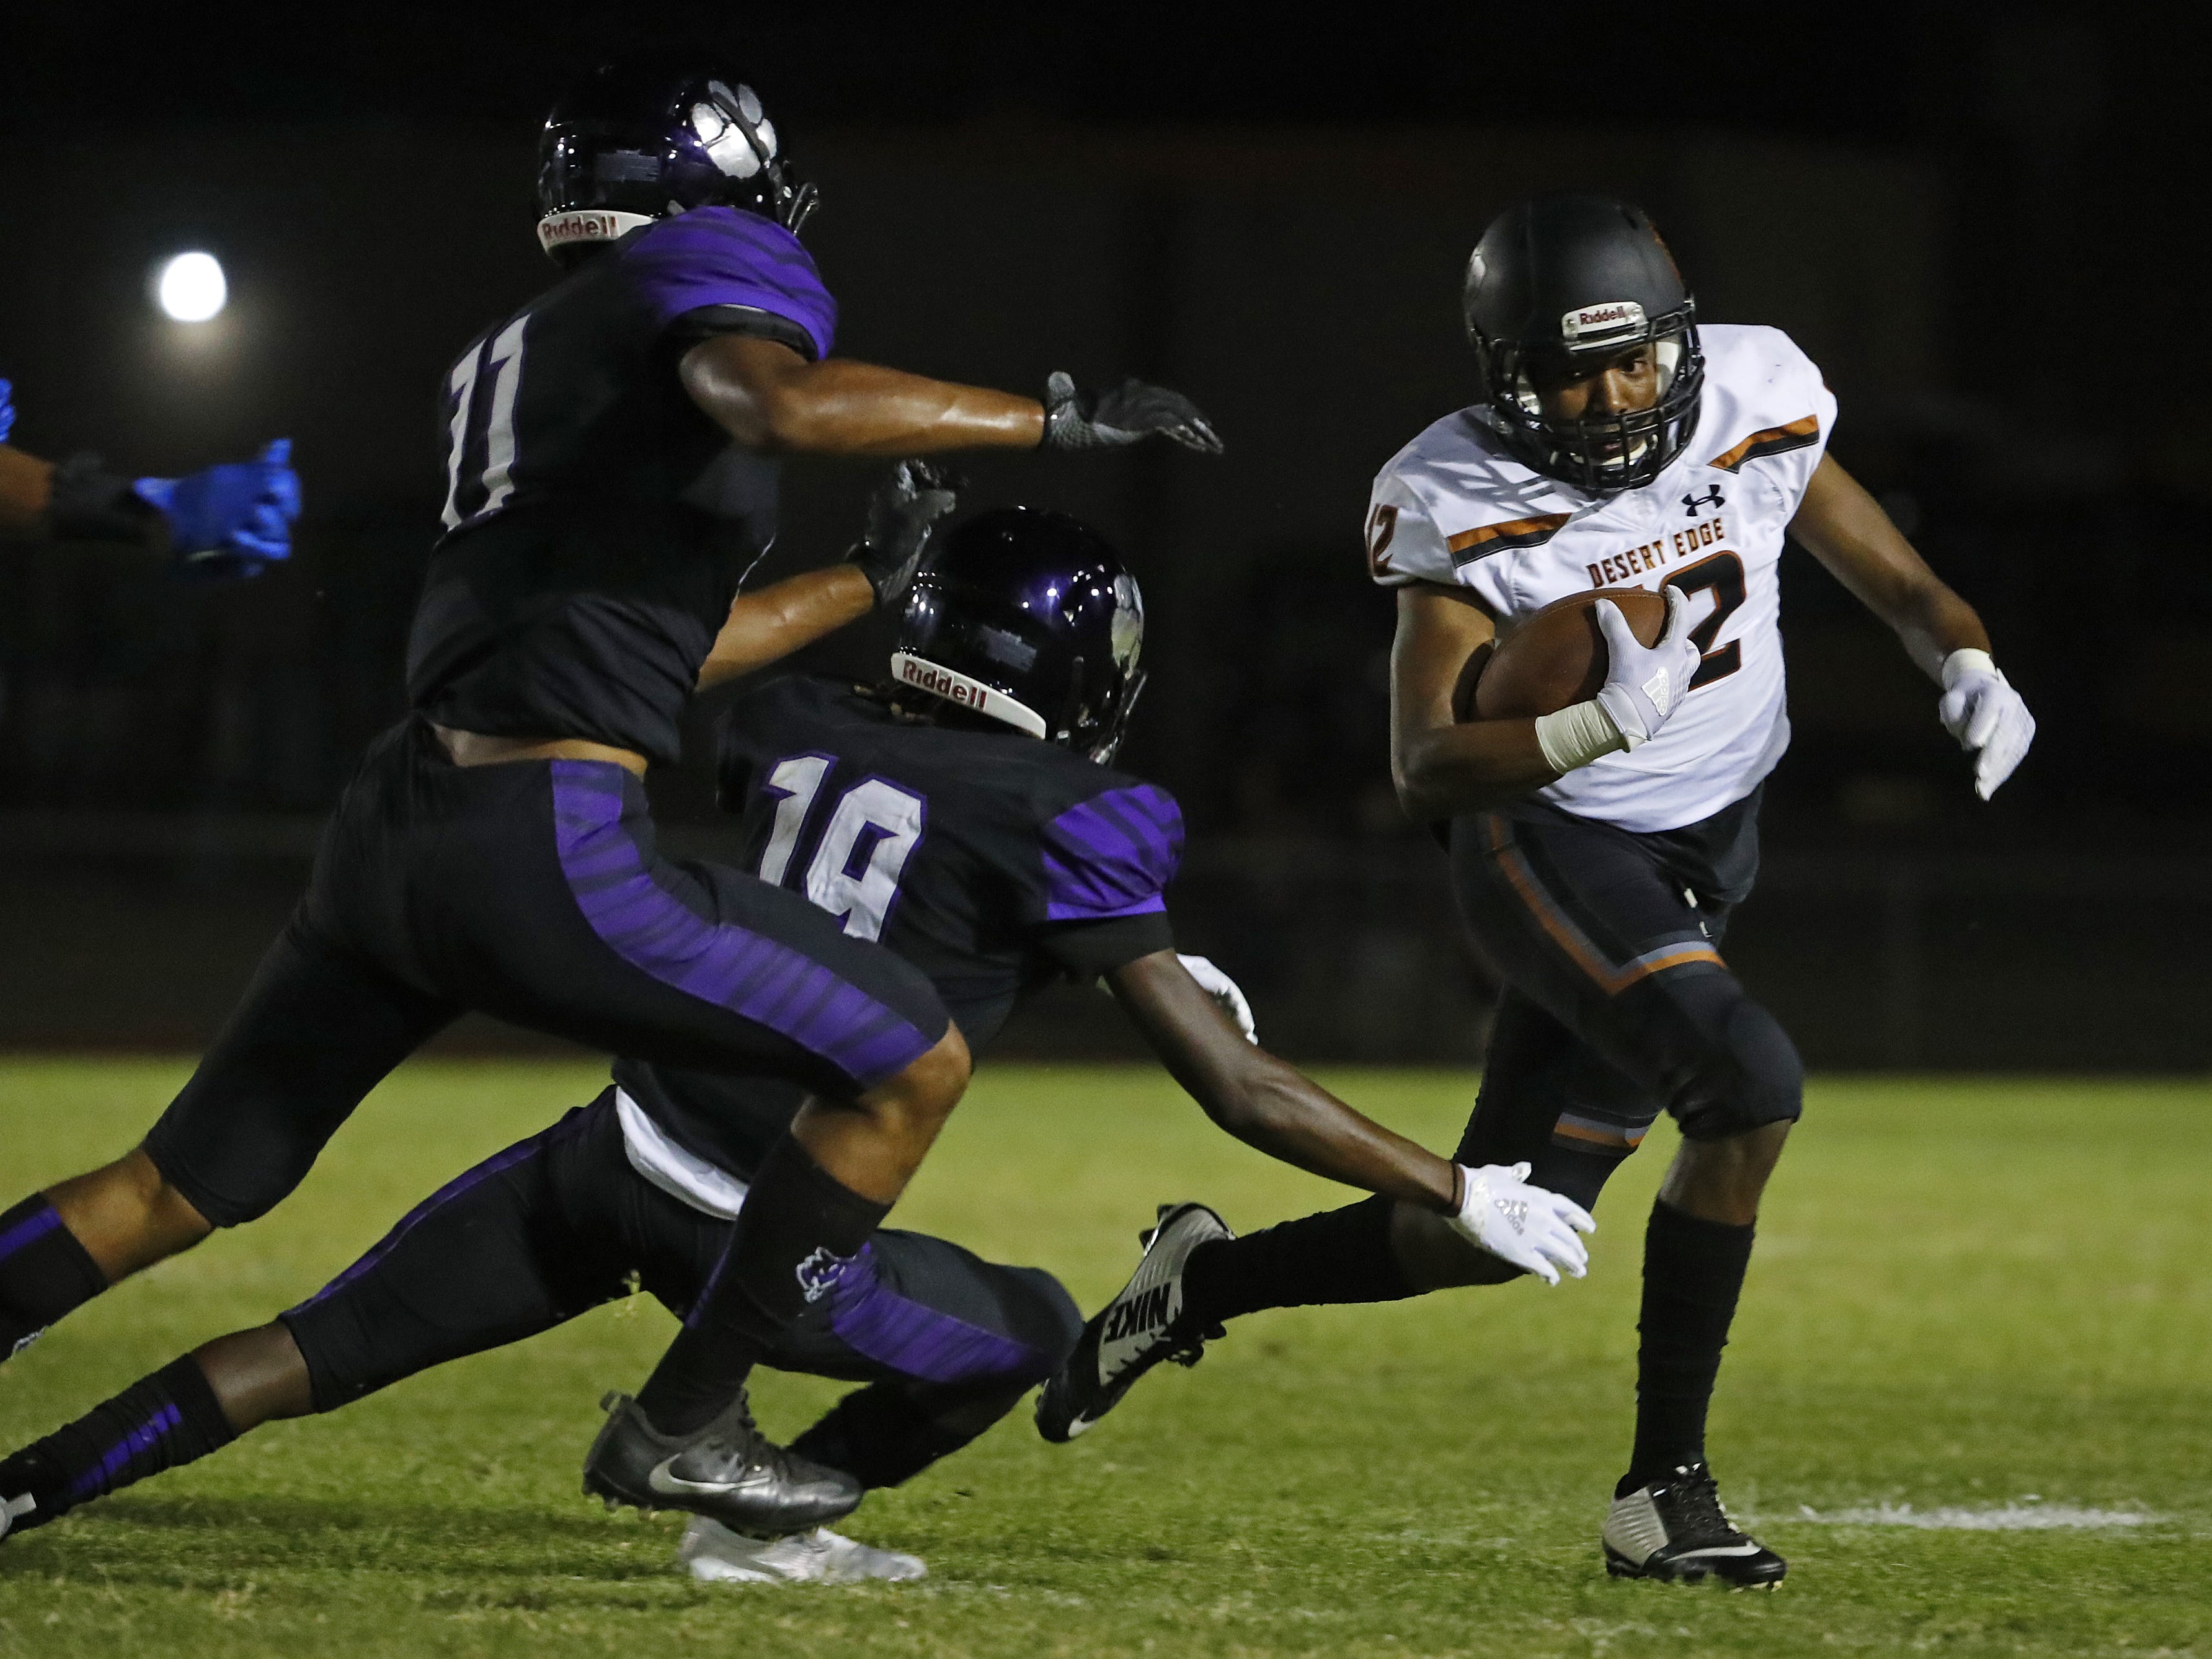 Desert Edge's Kennith Powell (12) breaks tackles from Millennium's Daylon Storey (11) and Kaysan Barnett (19) during a game at Millennium High School in Goodyear, Ariz. on Sept. 7, 2018.